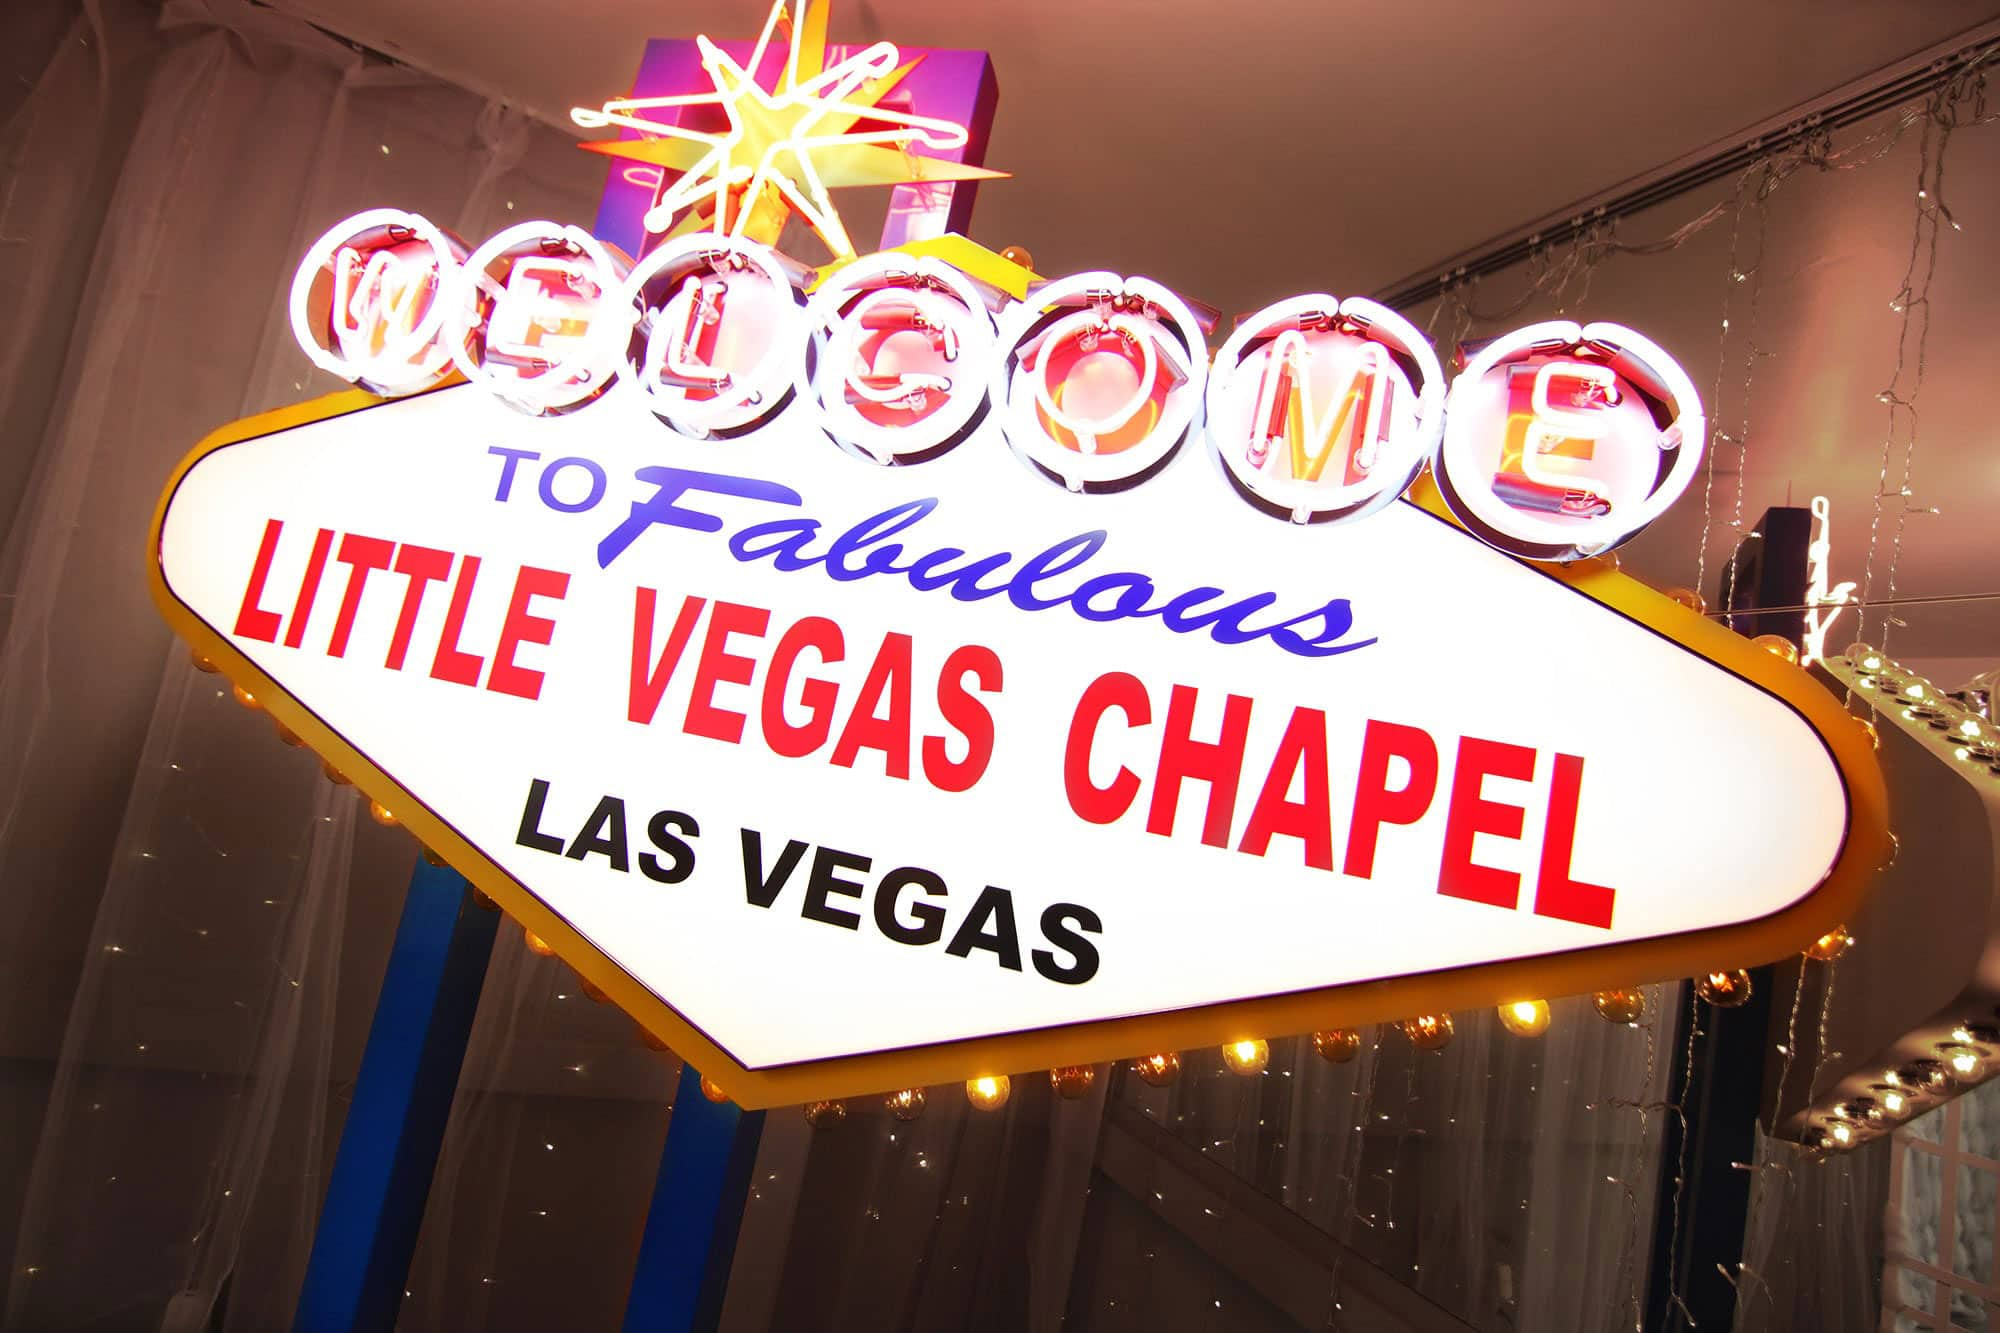 Little Vegas Chapel Sign The Little Vegas Chapel